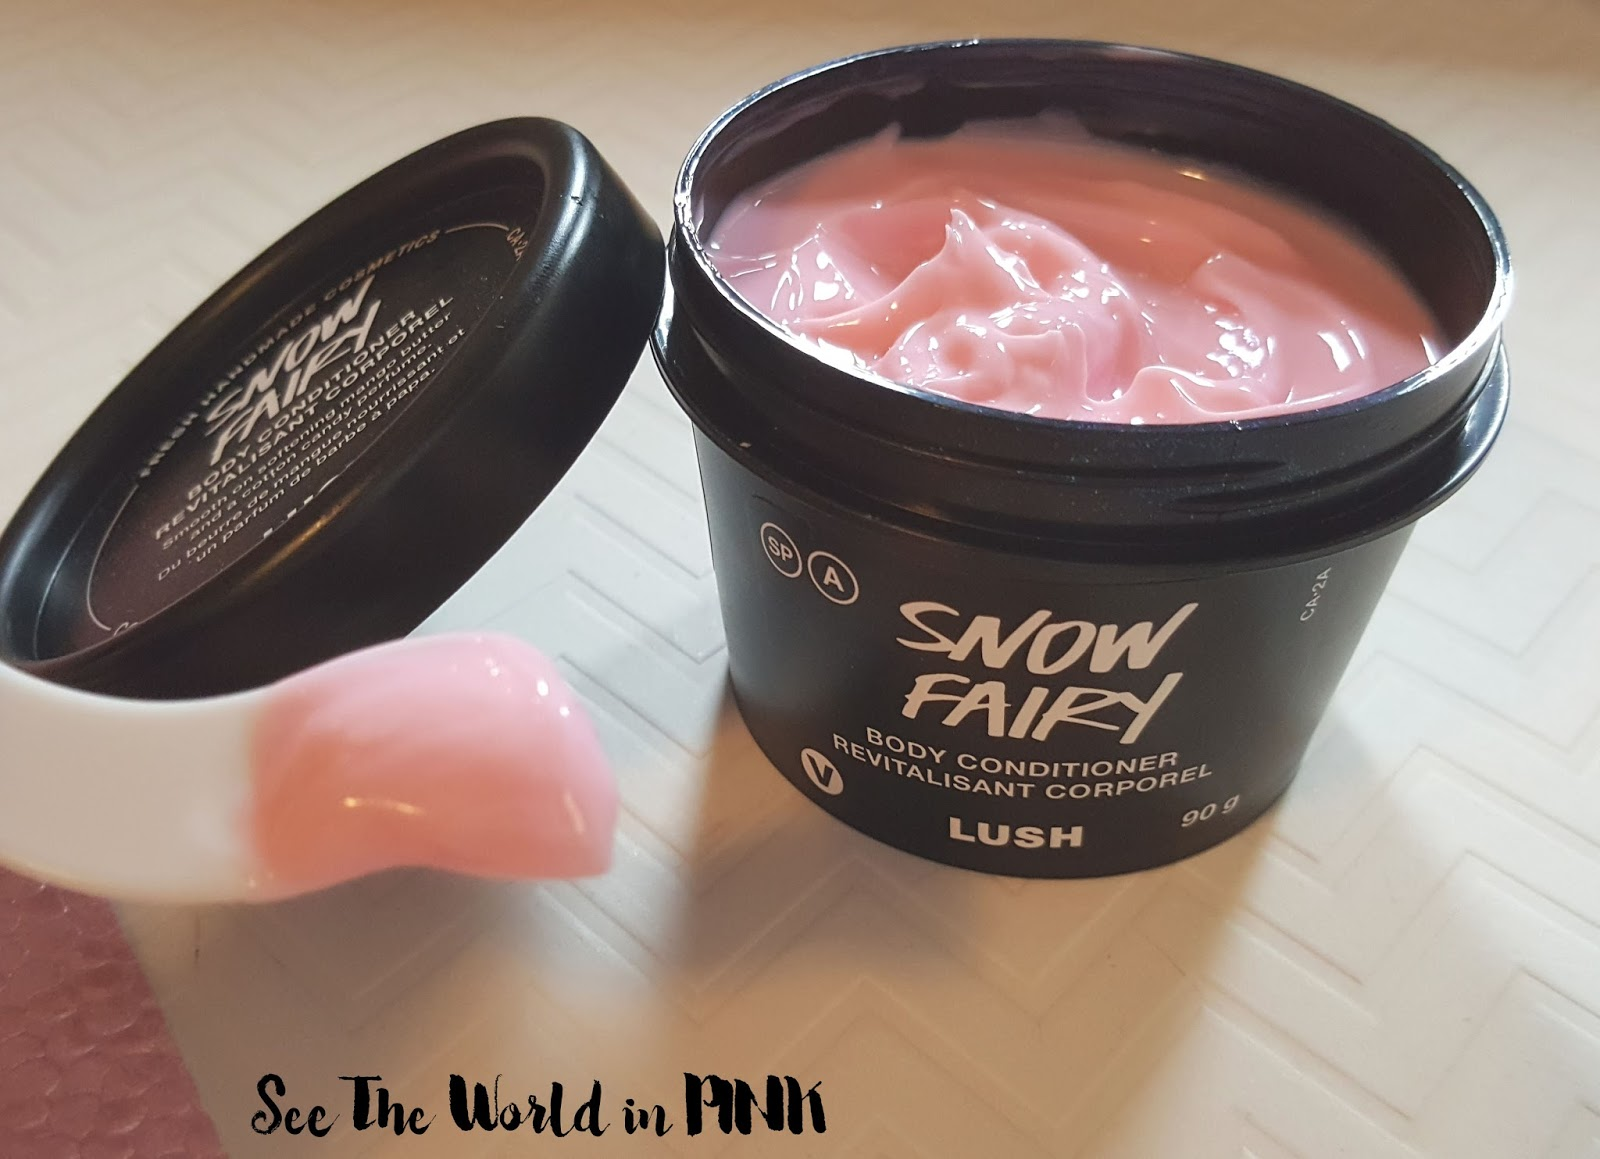 Skincare Sunday - Lush Snow Fairy Body Conditioner